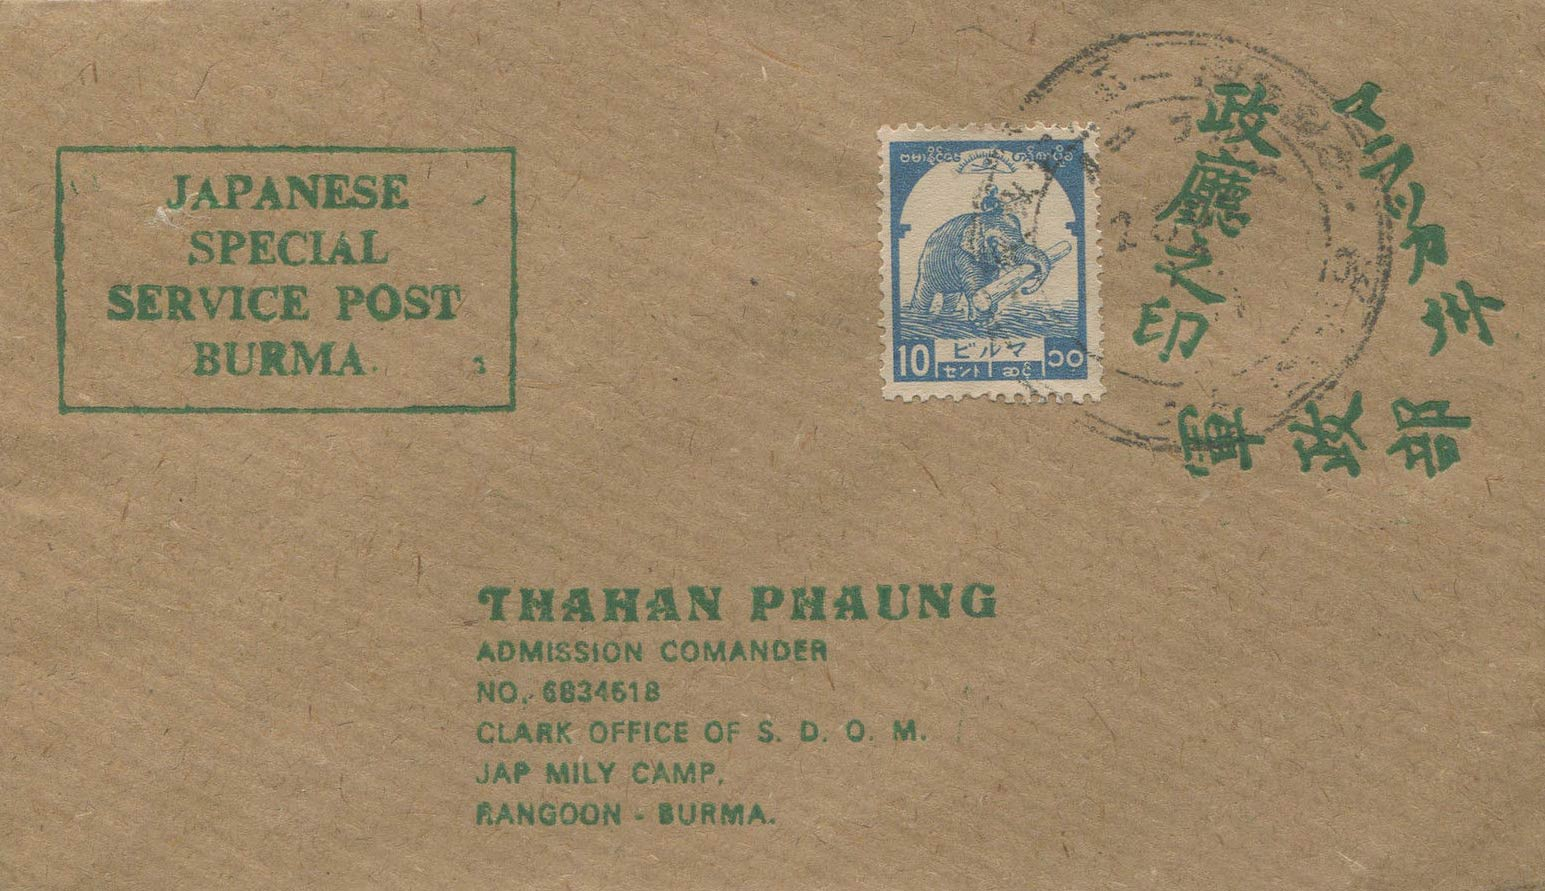 Burma_Japanese-Special-Service-Post_Cover_Forgery4